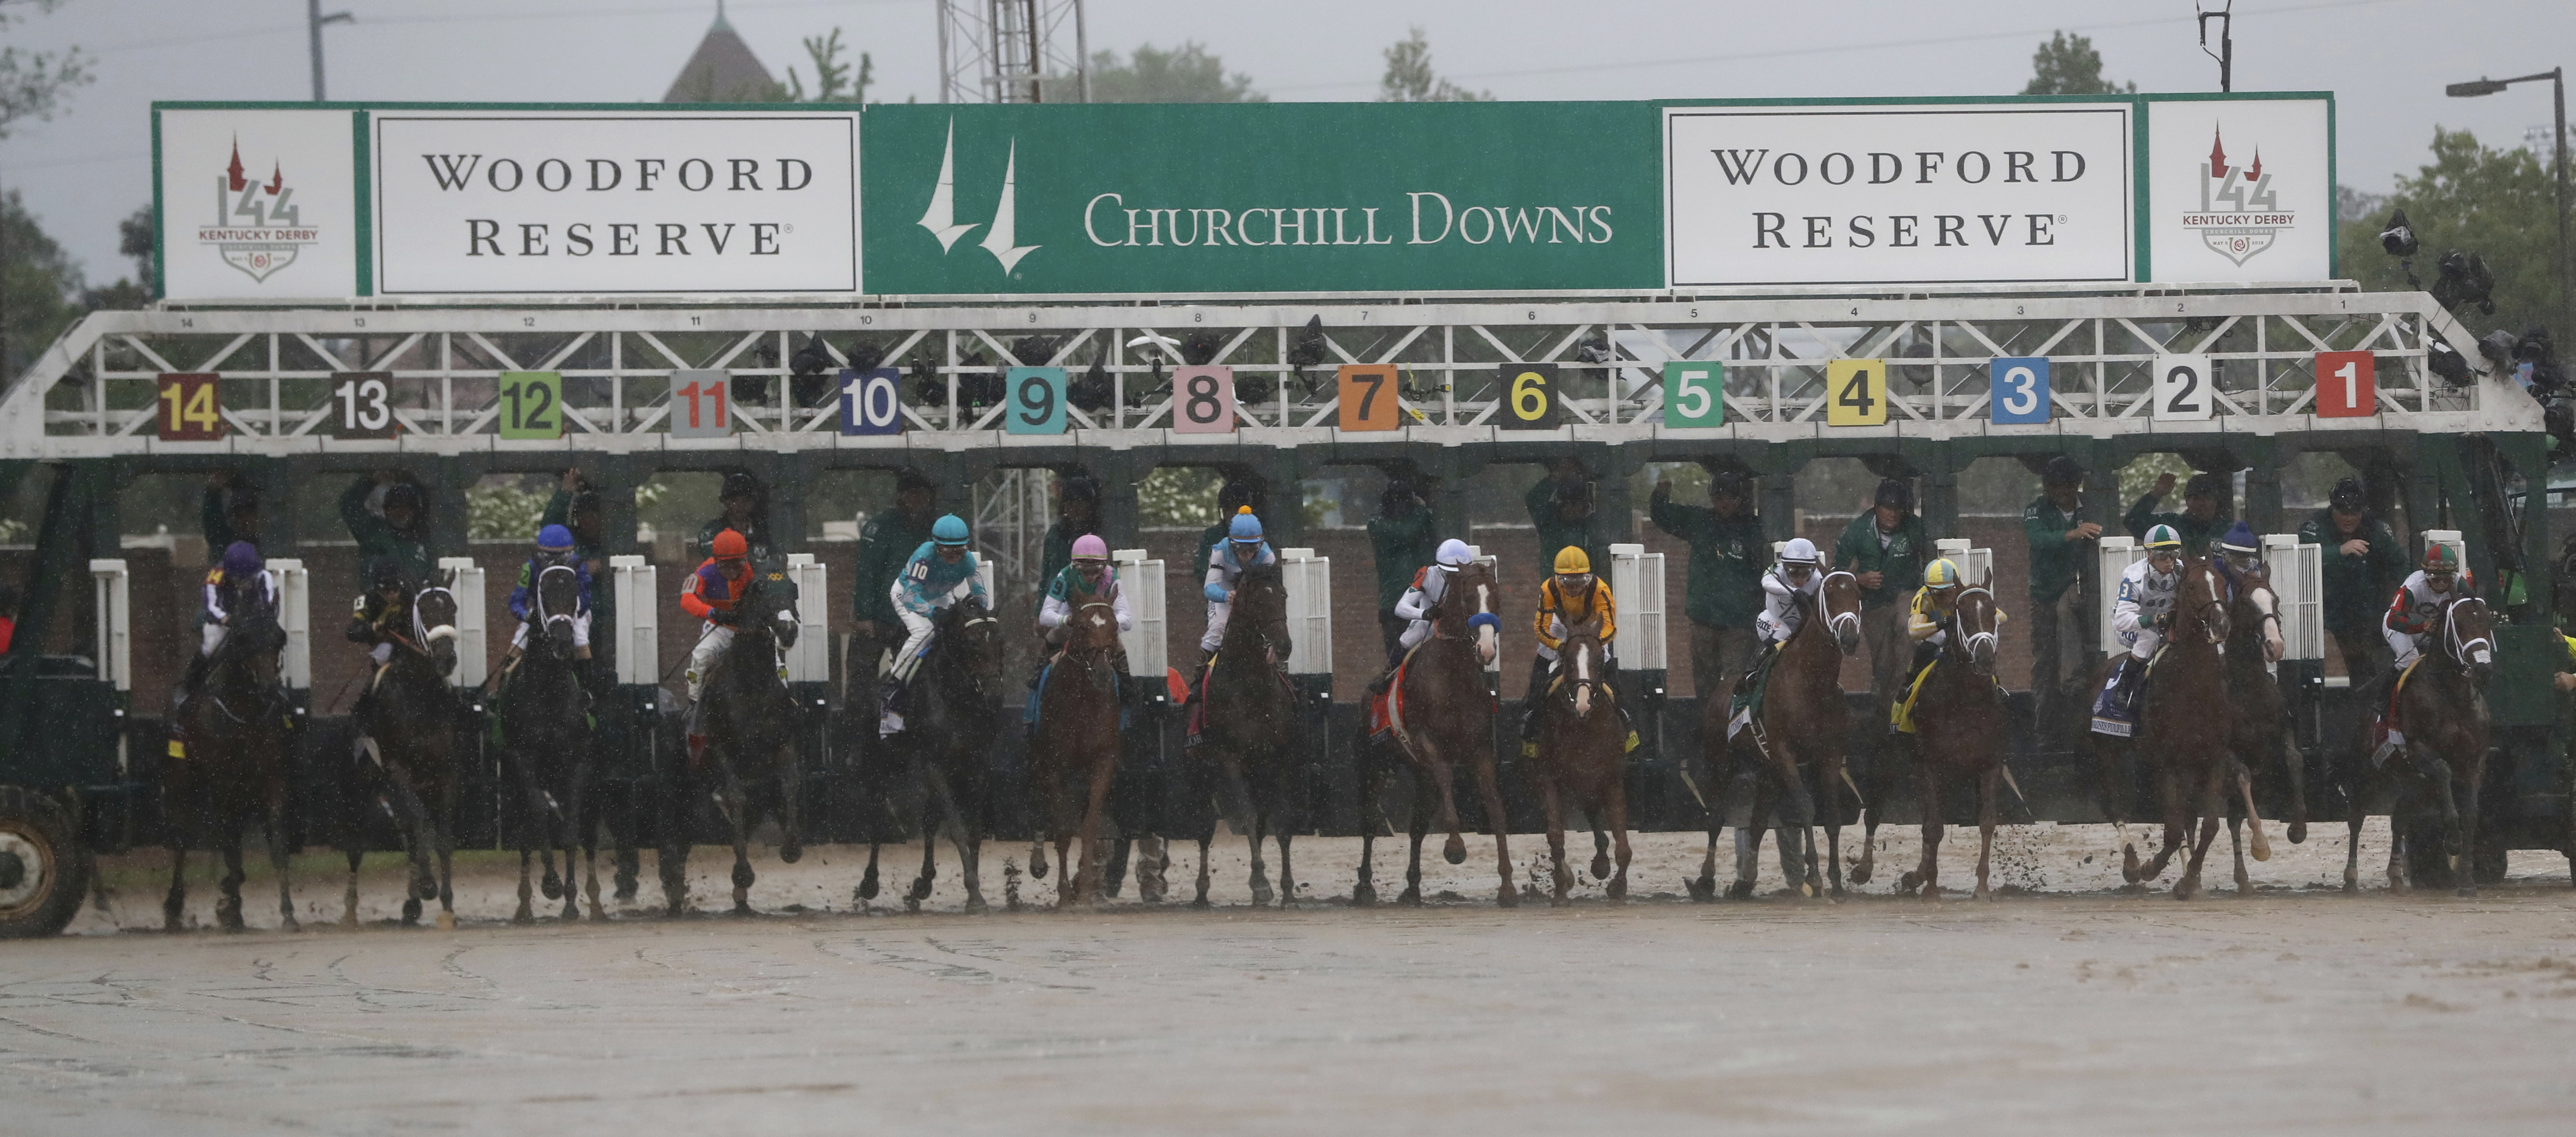 What S Happening At The Kentucky Derby Photos Fashion Hats Race Results The Washington Post